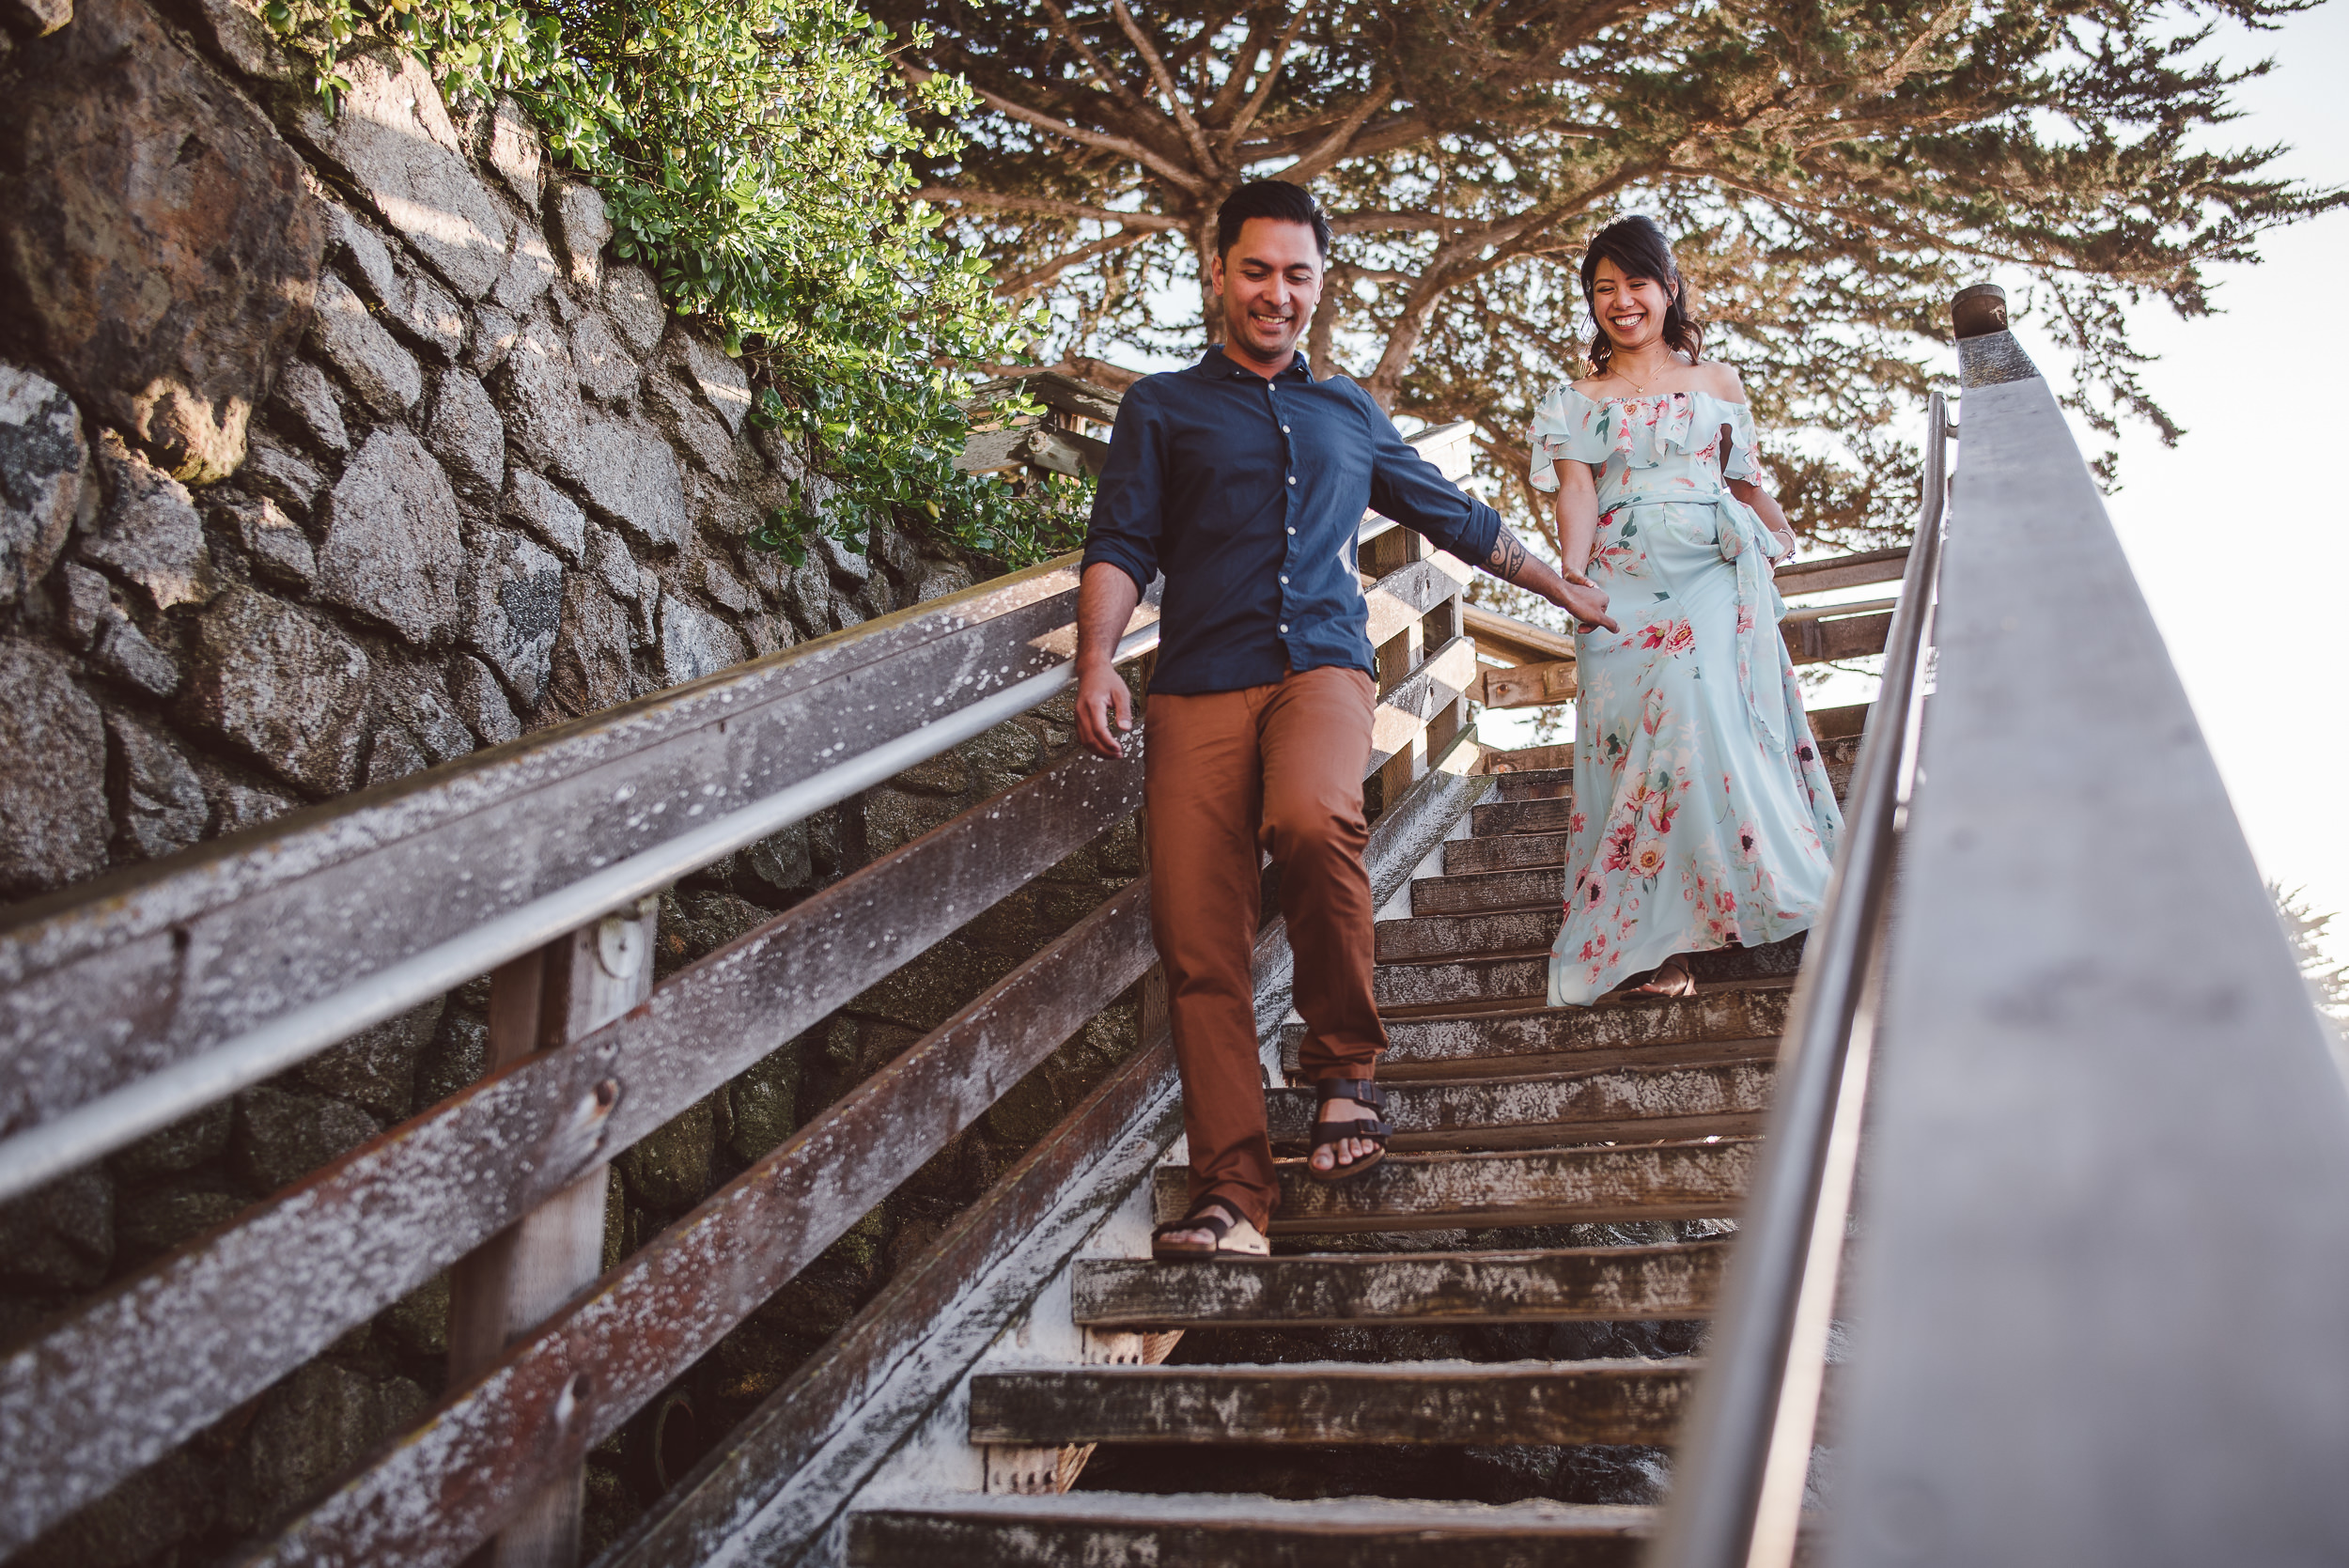 Carmel-by-the-Sea-Engagement-Photography-005.jpg